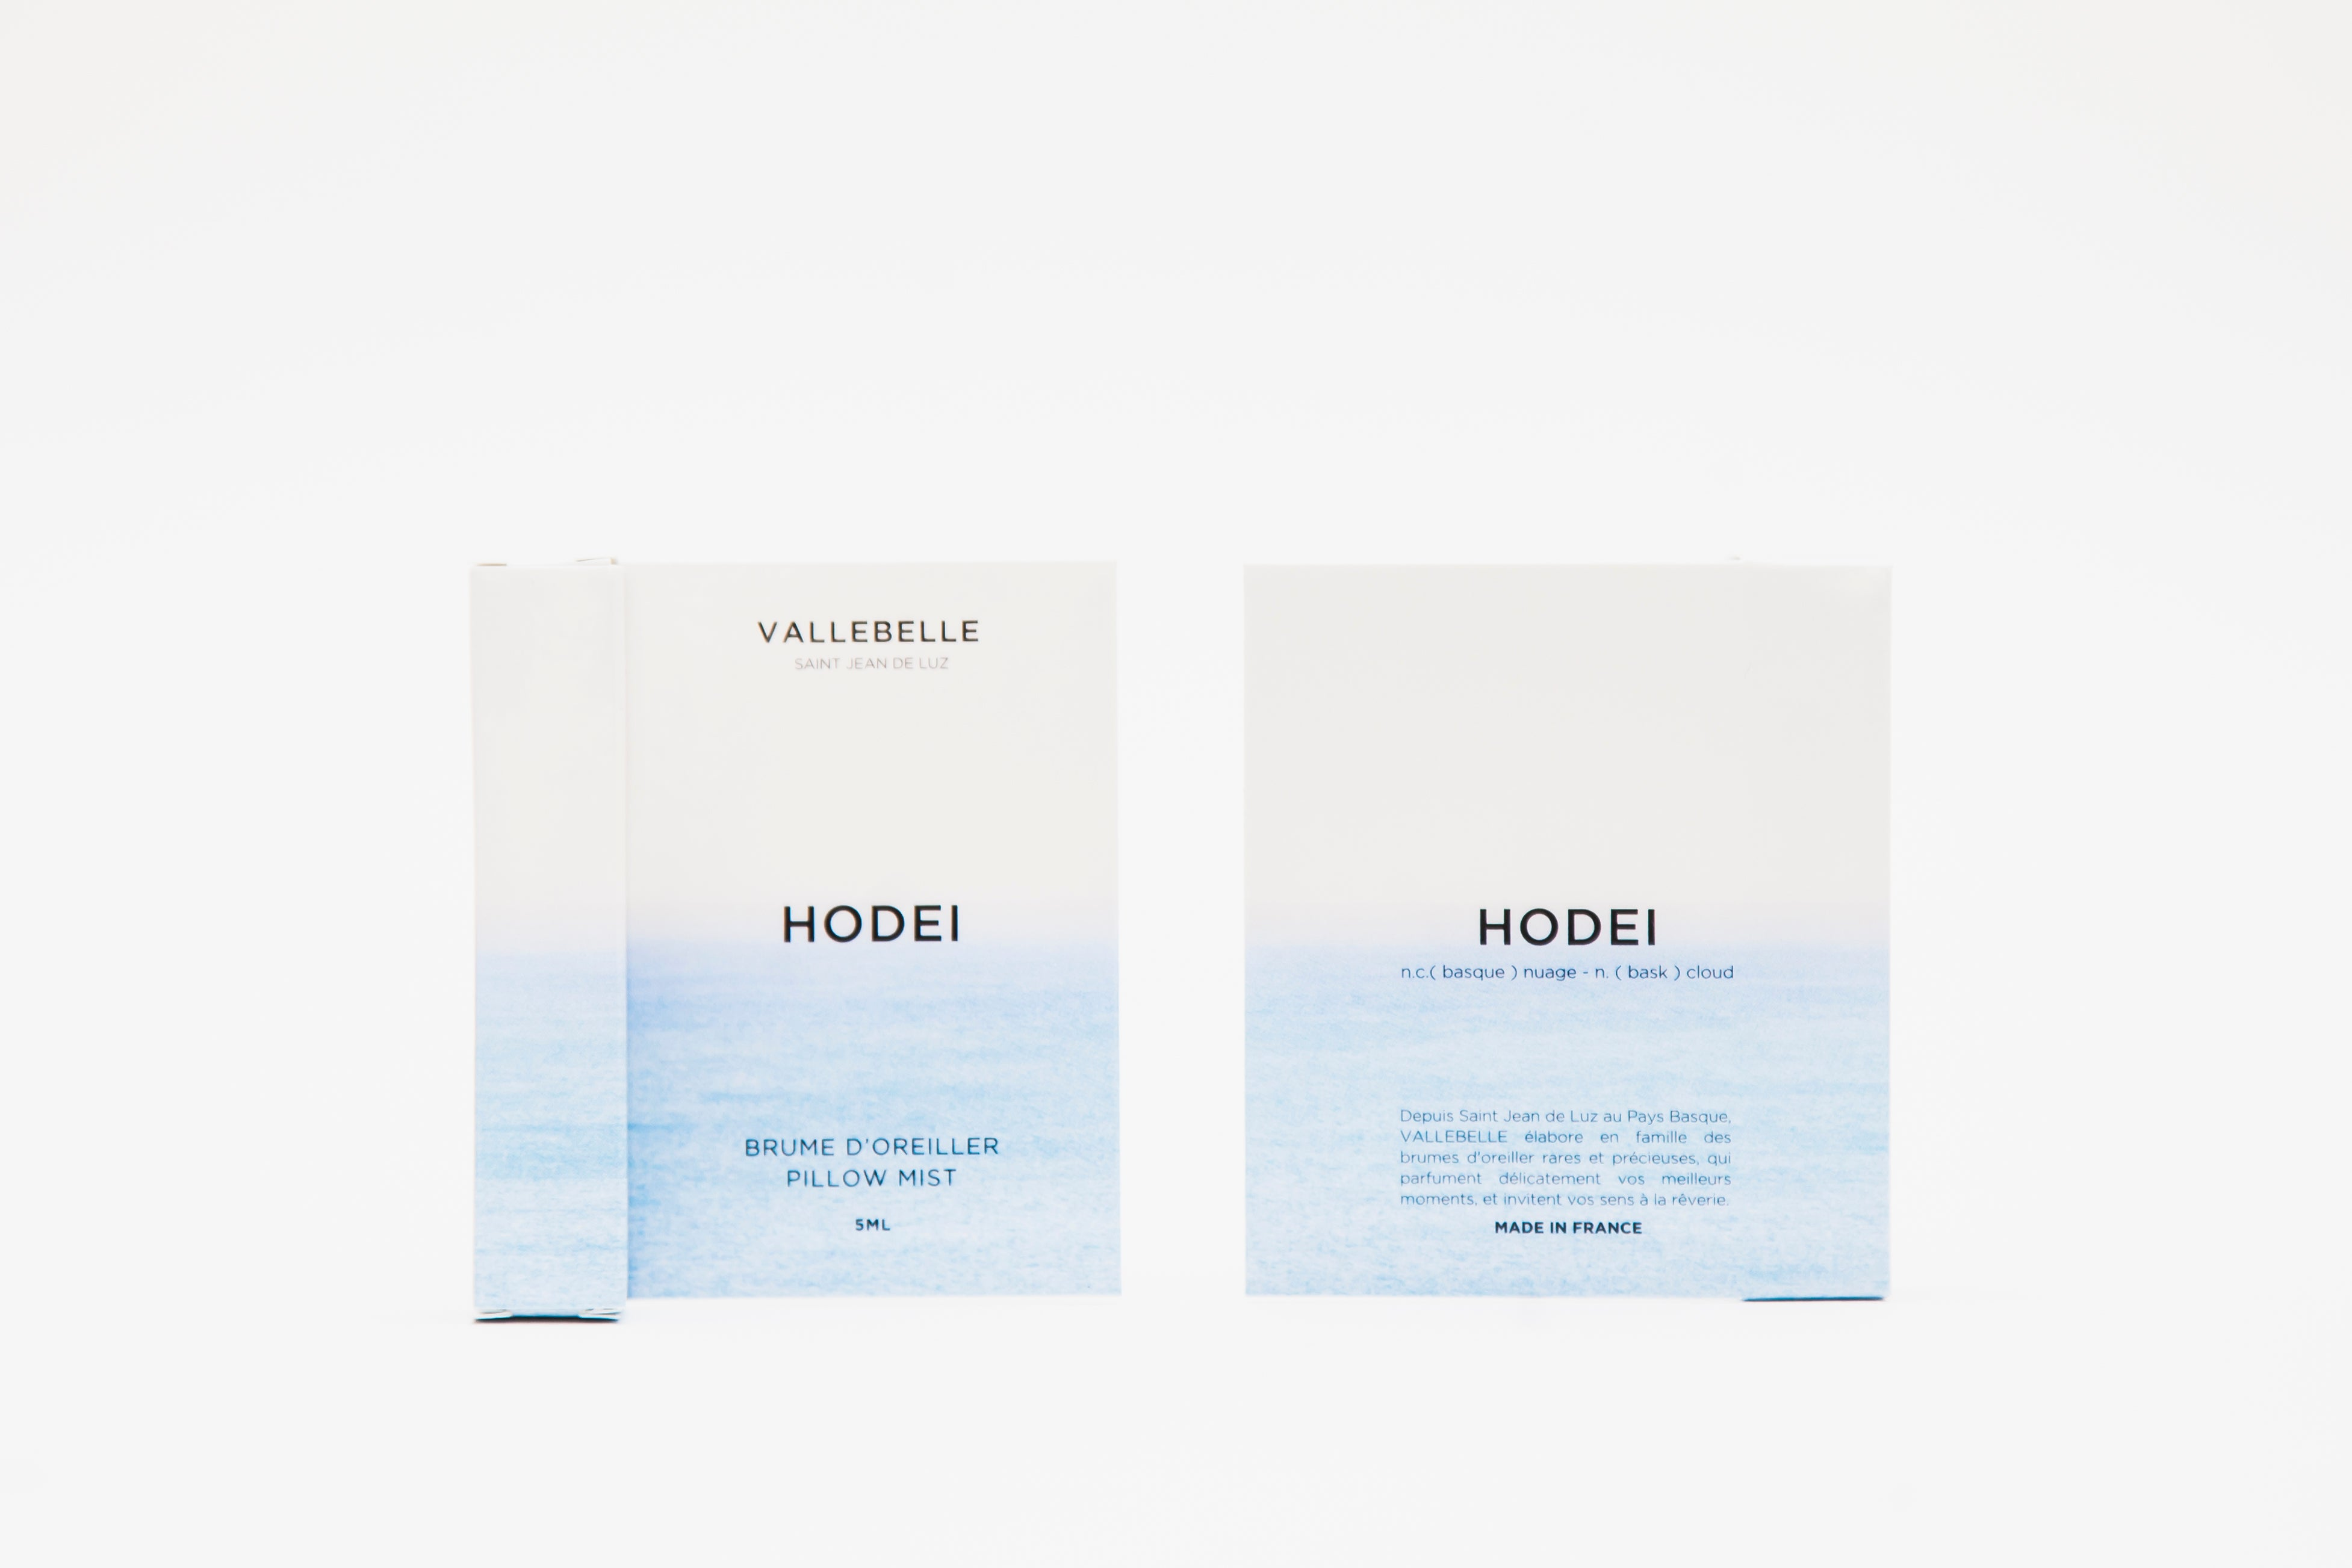 Brume de linge HODEI travel size 5 ml